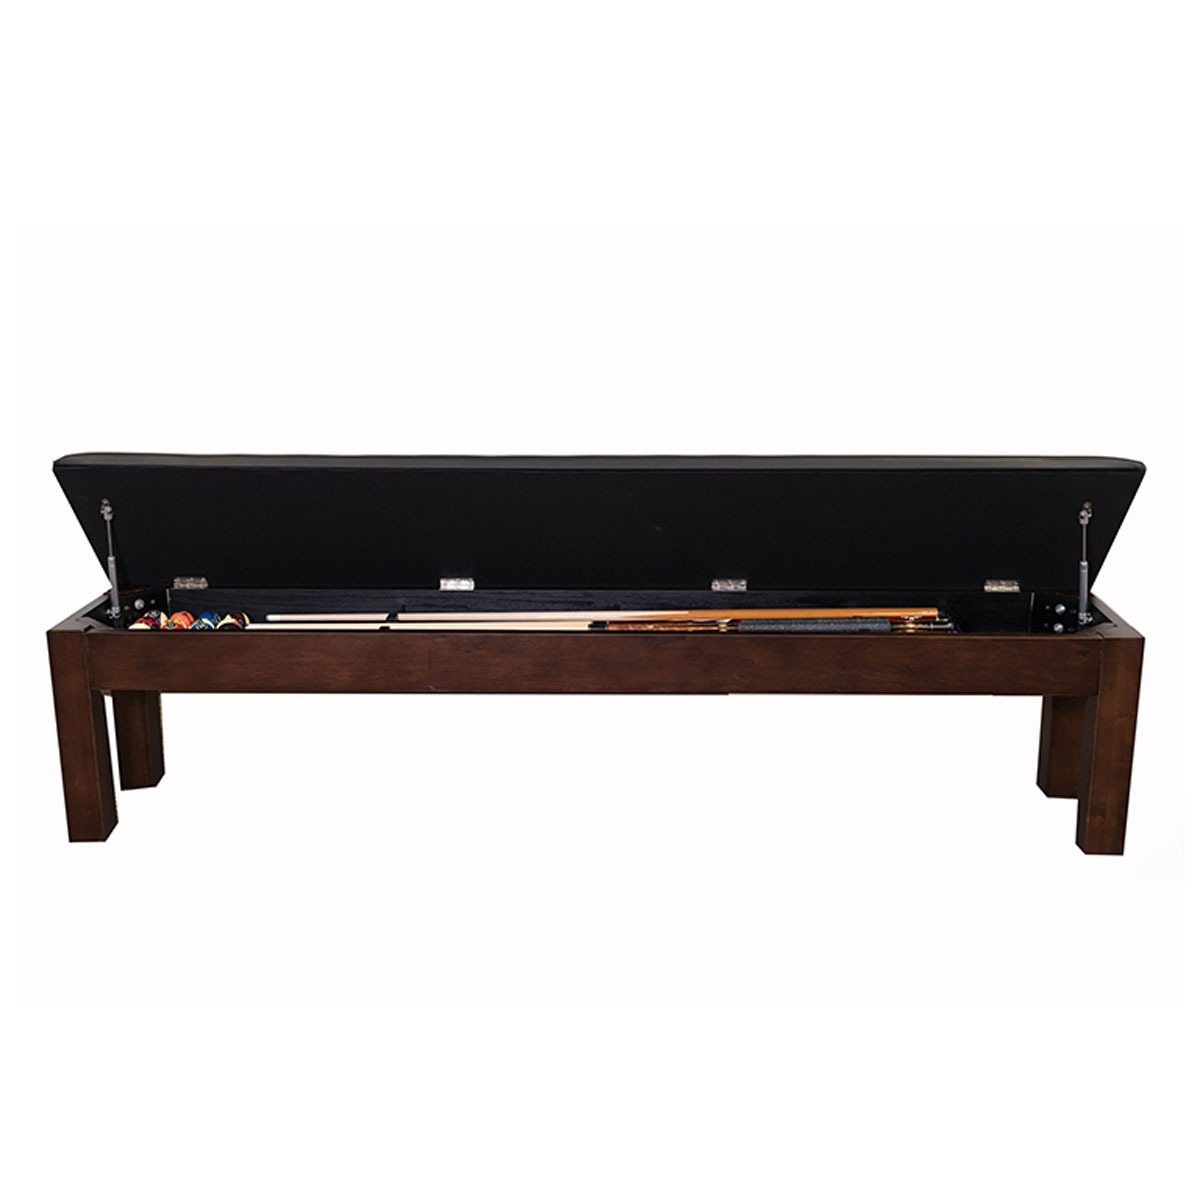 Hamilton Bench Openq - Duke Pool Table